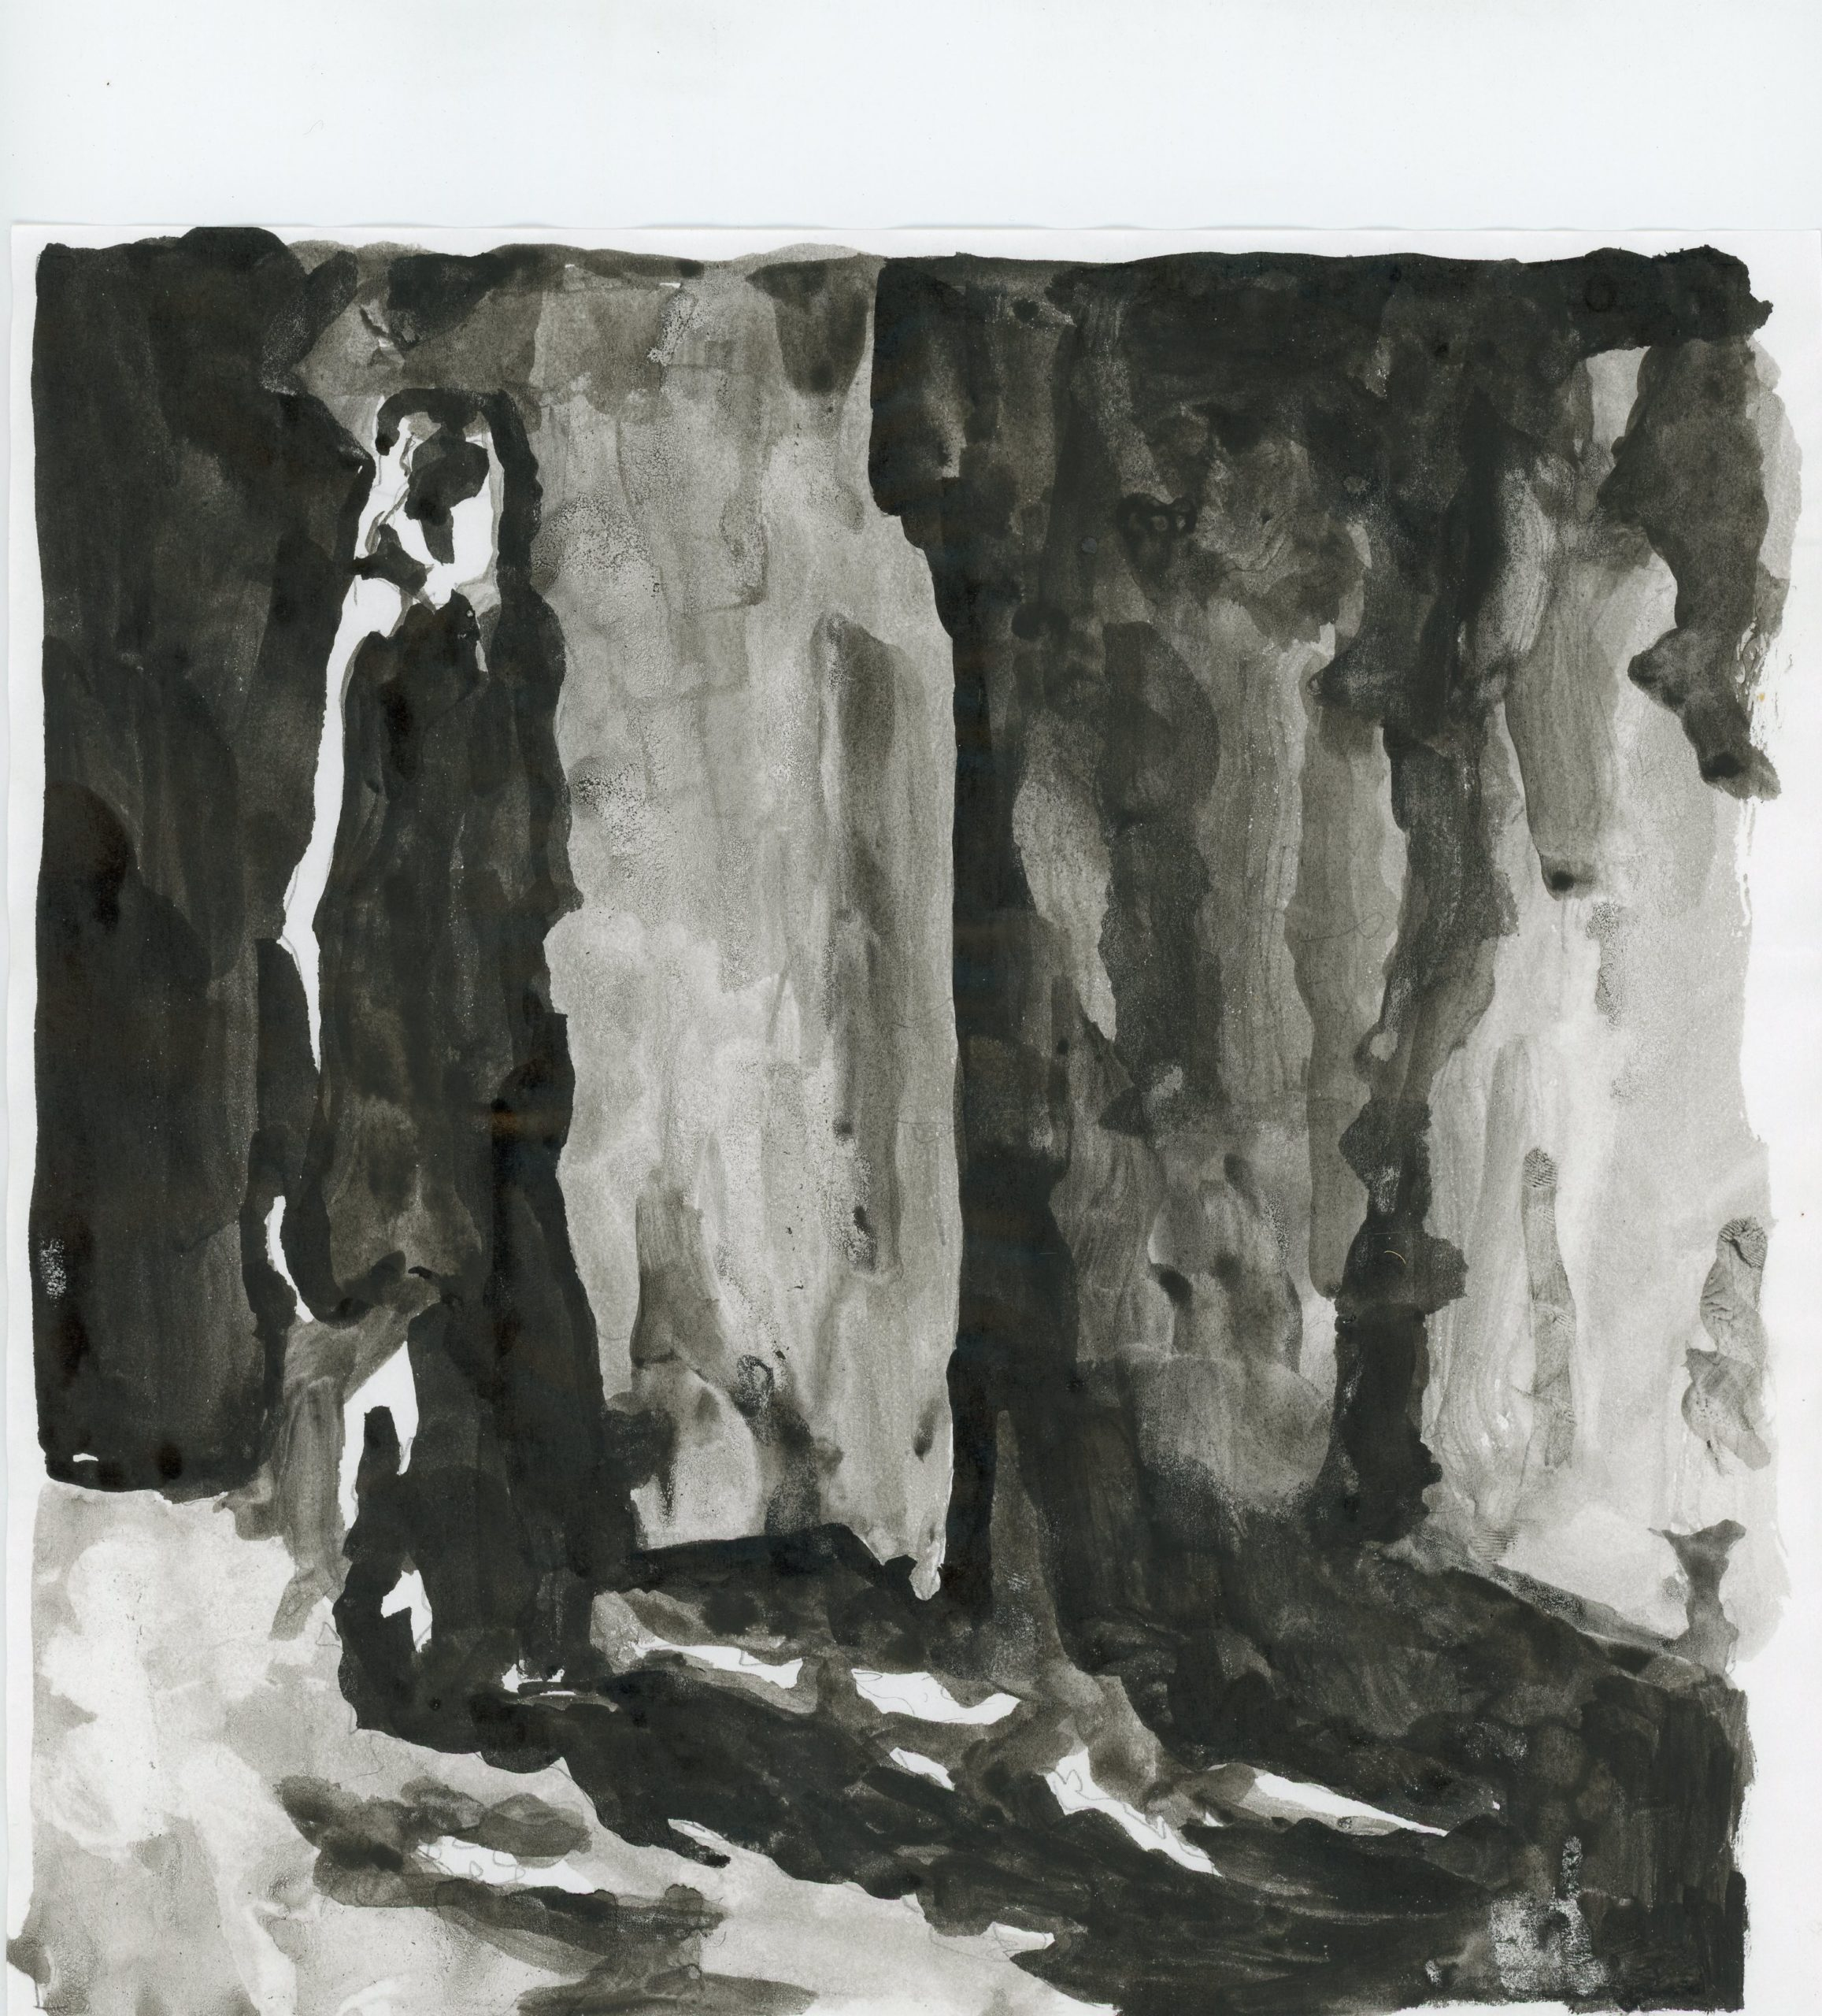 Anna Ridler, Fall of the House of Usher II, 1_7530, ink on paper, 21 x 21 cm, 2017